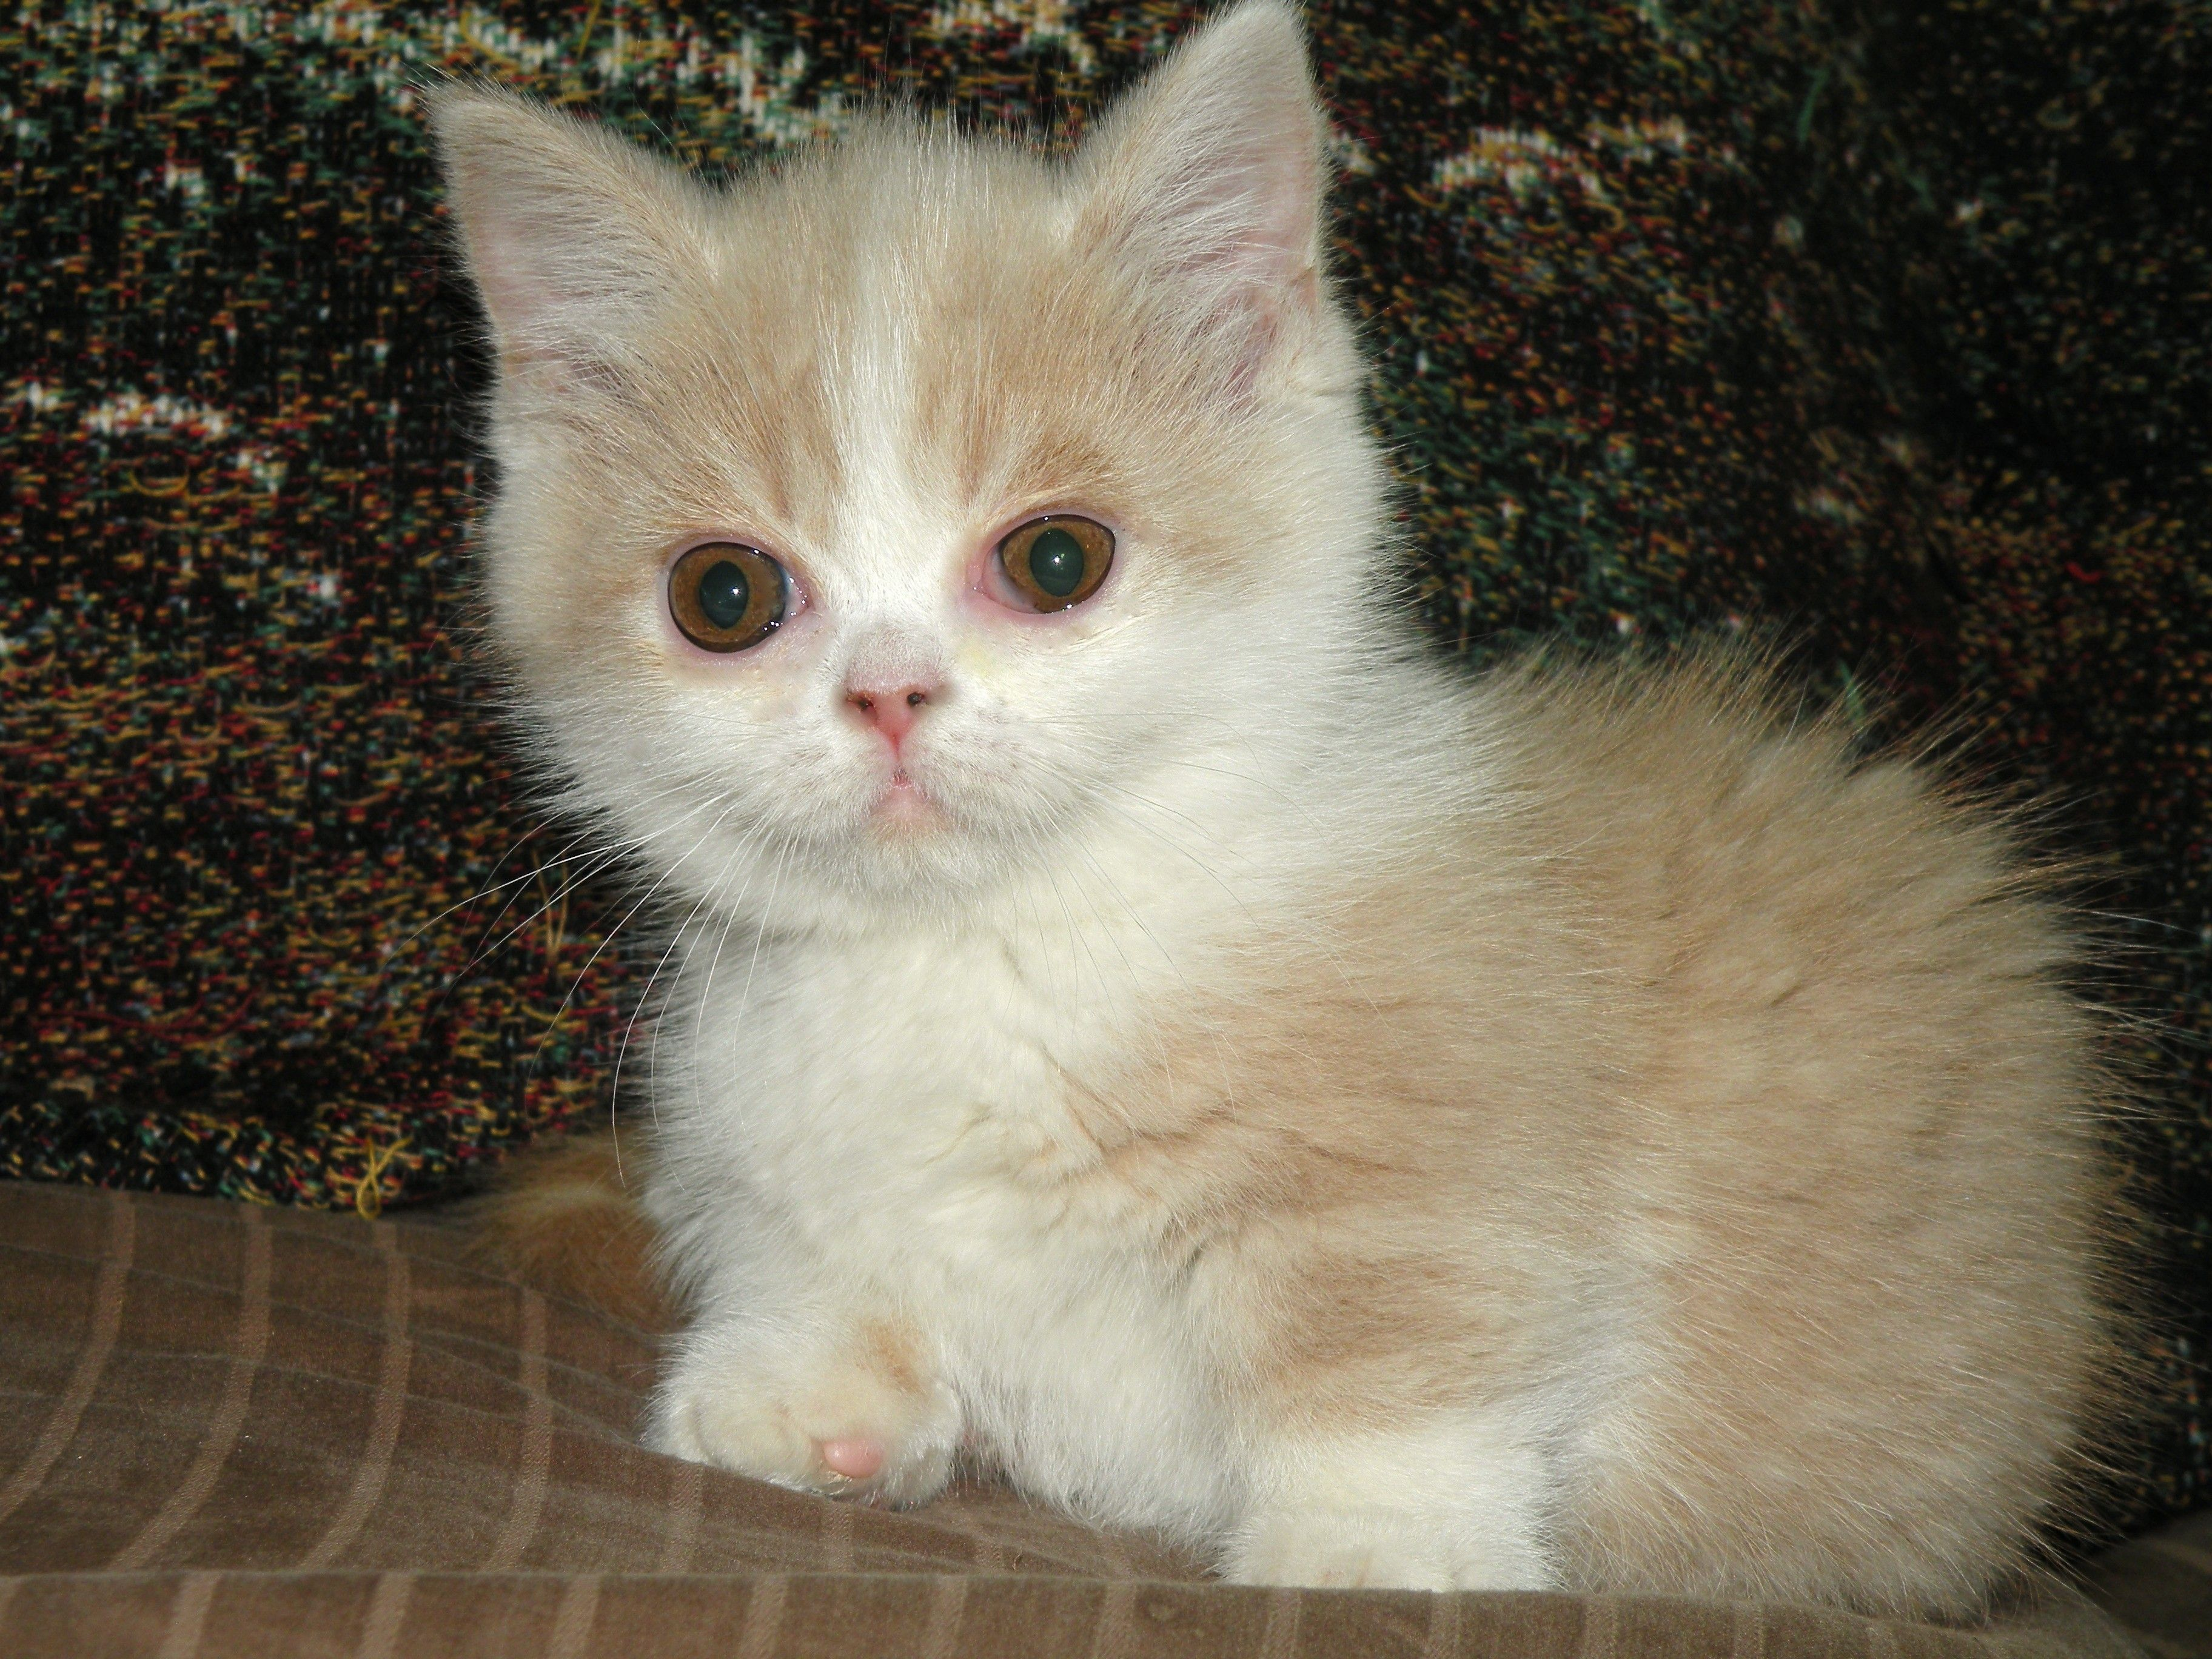 Munchkin Kitten Solomon Is Looking For A New Home Utd On Shots And Wormed Housebroken And Use To Older Children And D Cute Cats Dogs And Kids Munchkin Kitten